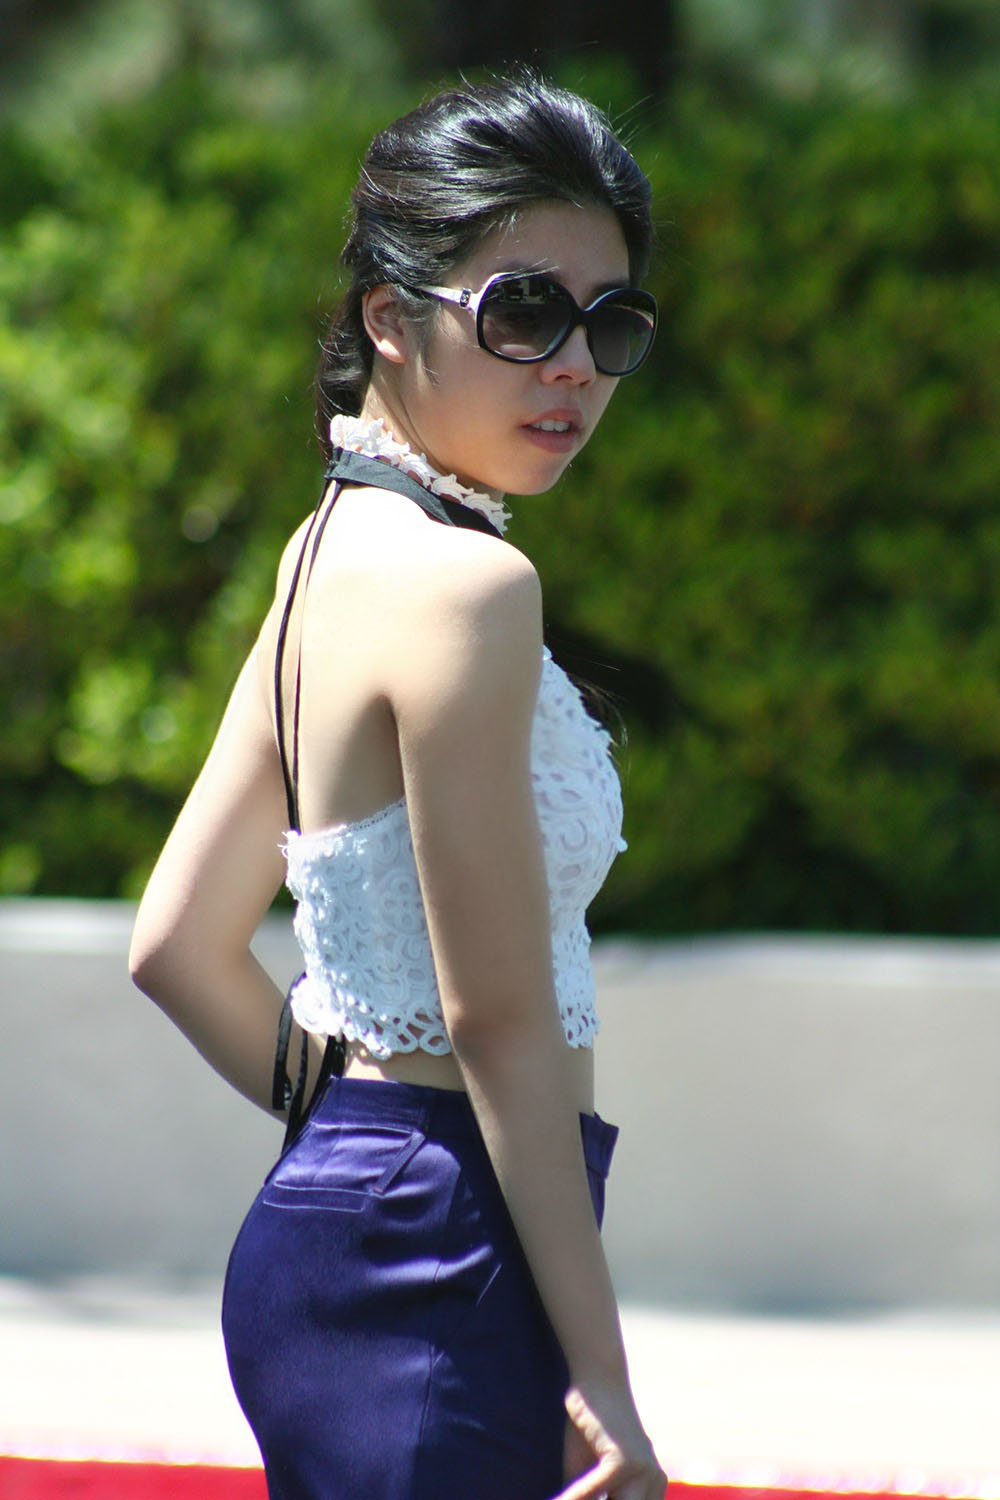 How To wear a crop top to work_Classy and Fashionable_Adrienne Nguyen_Invictus